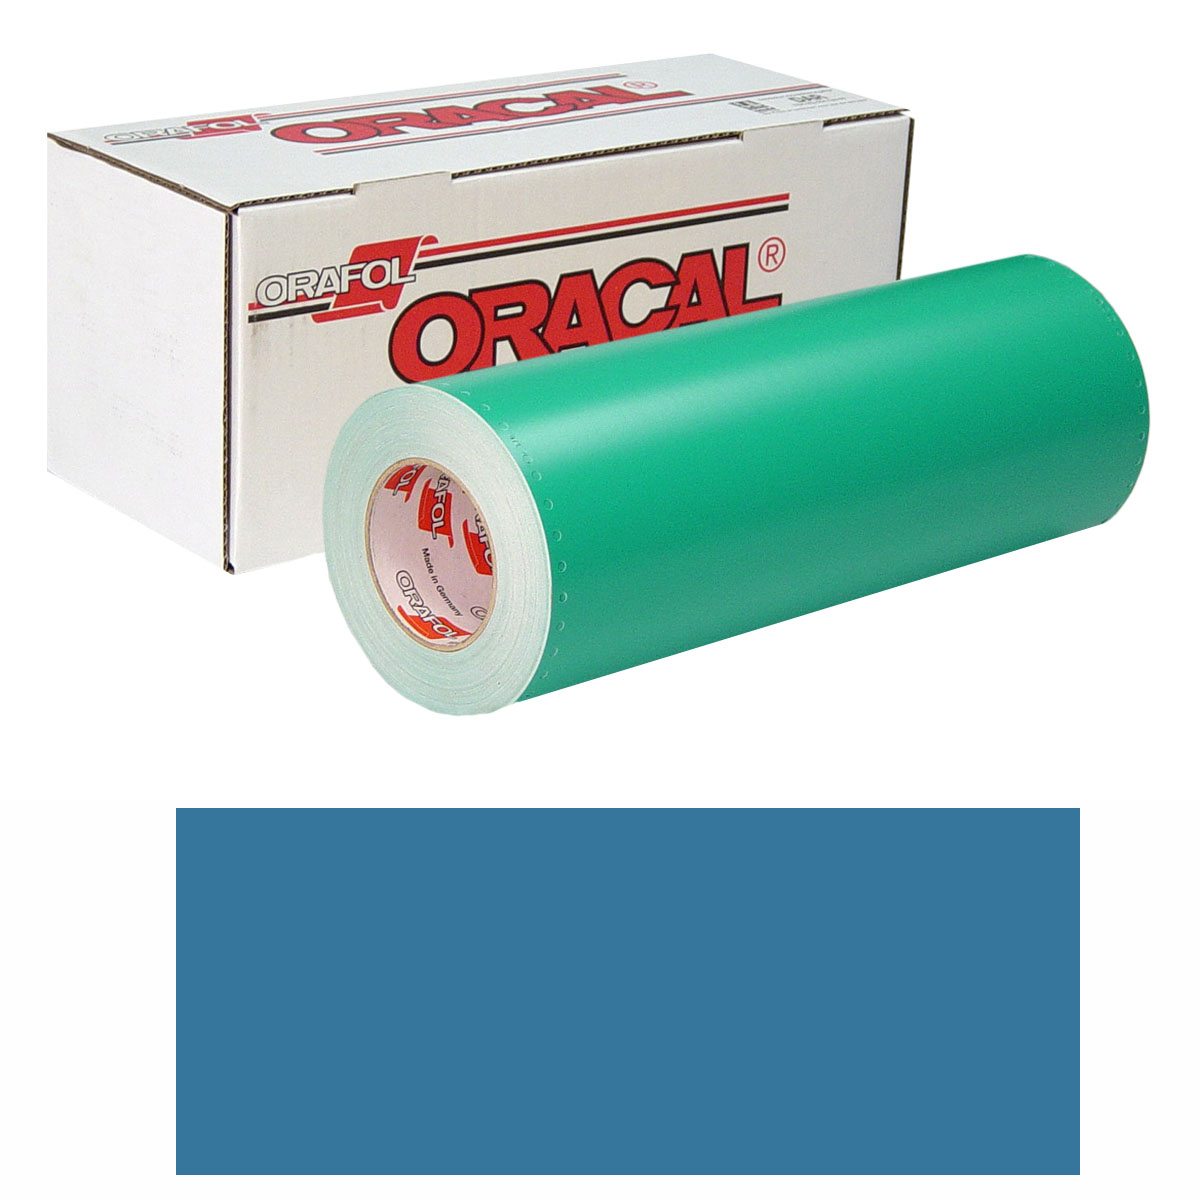 ORACAL 8500 Unp 24In X 50Yd 051 Gentian Blue